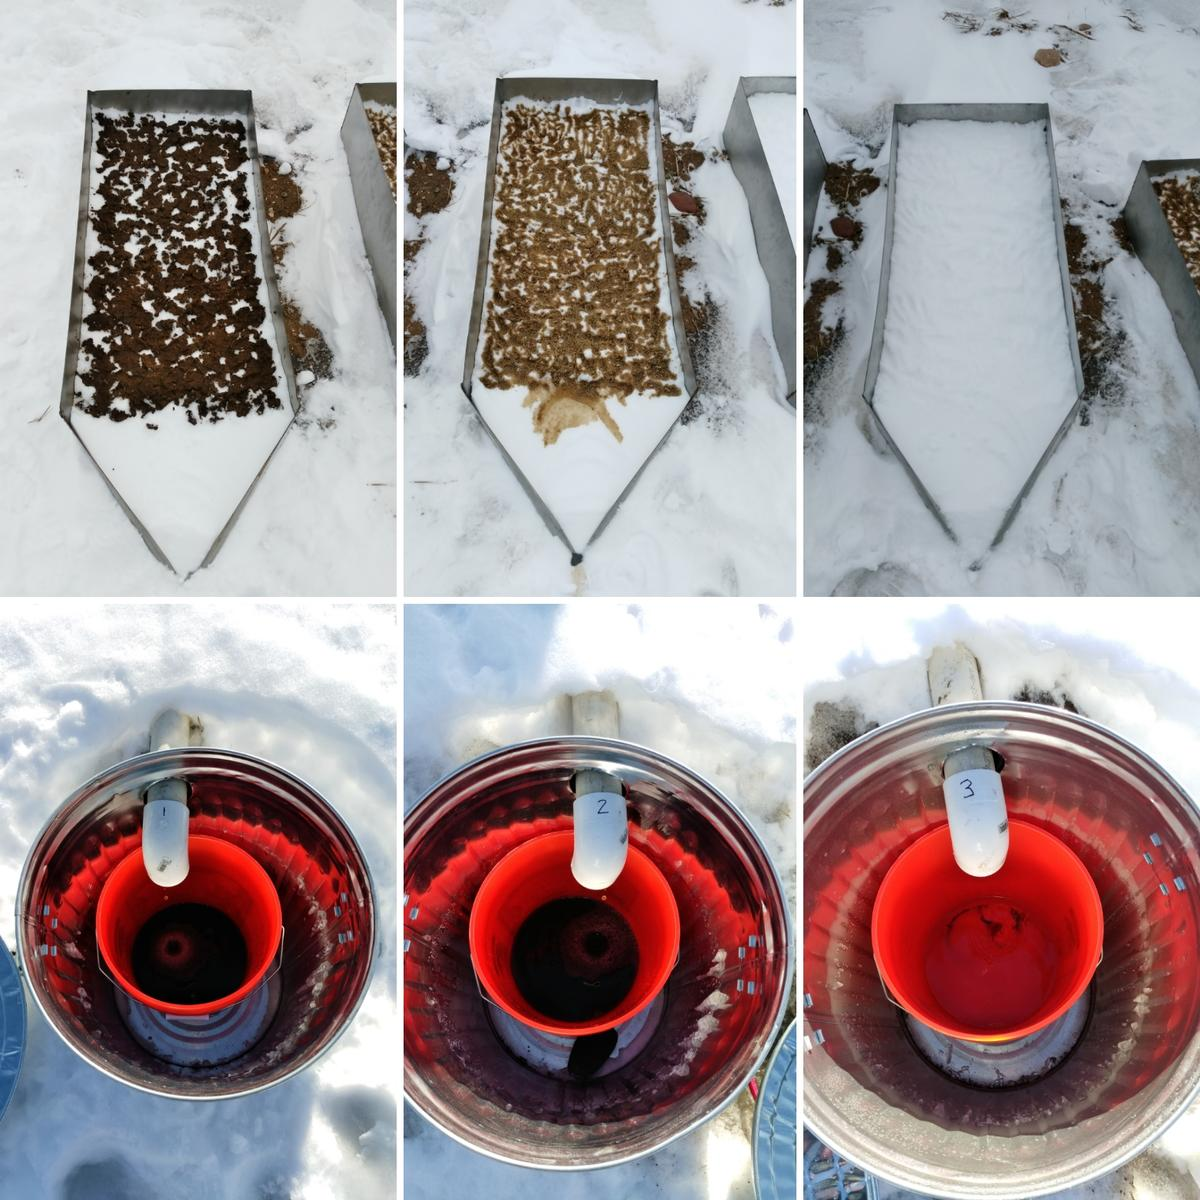 Runoff water after manure application of 15% solids manure, 3% solids manure, and no manure.